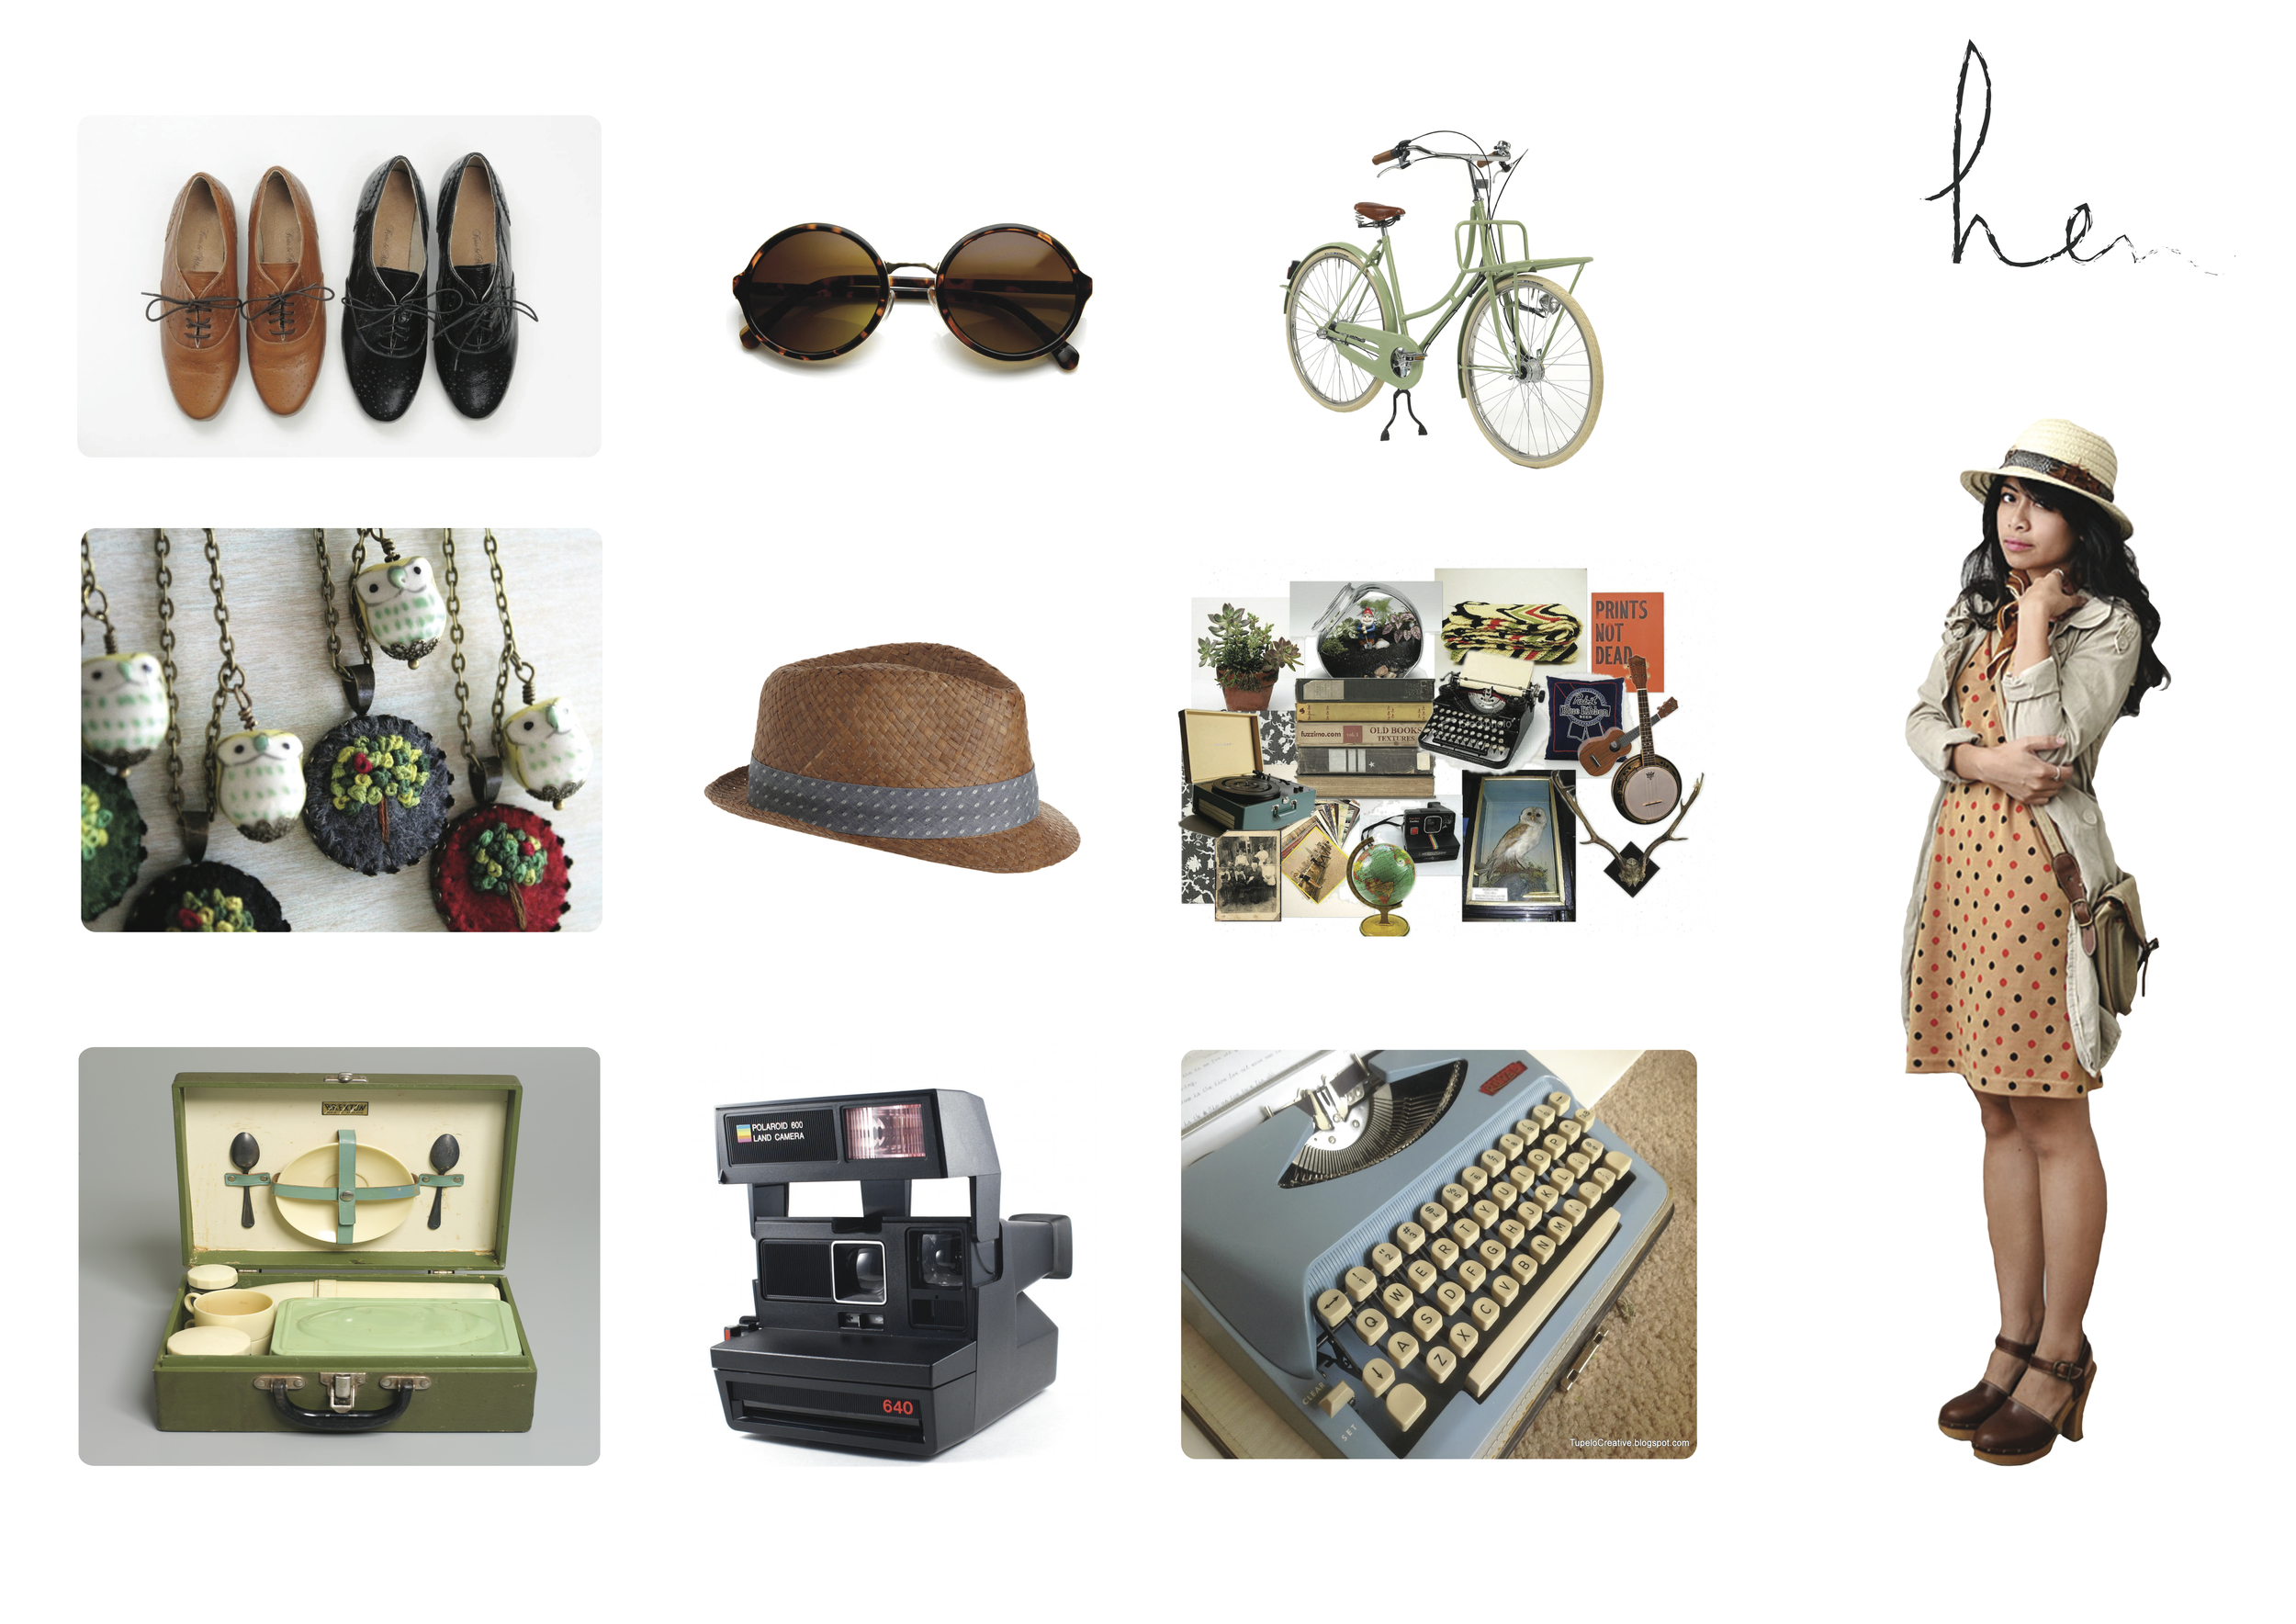 My group and I started by putting together mood boards to work out our style guide,